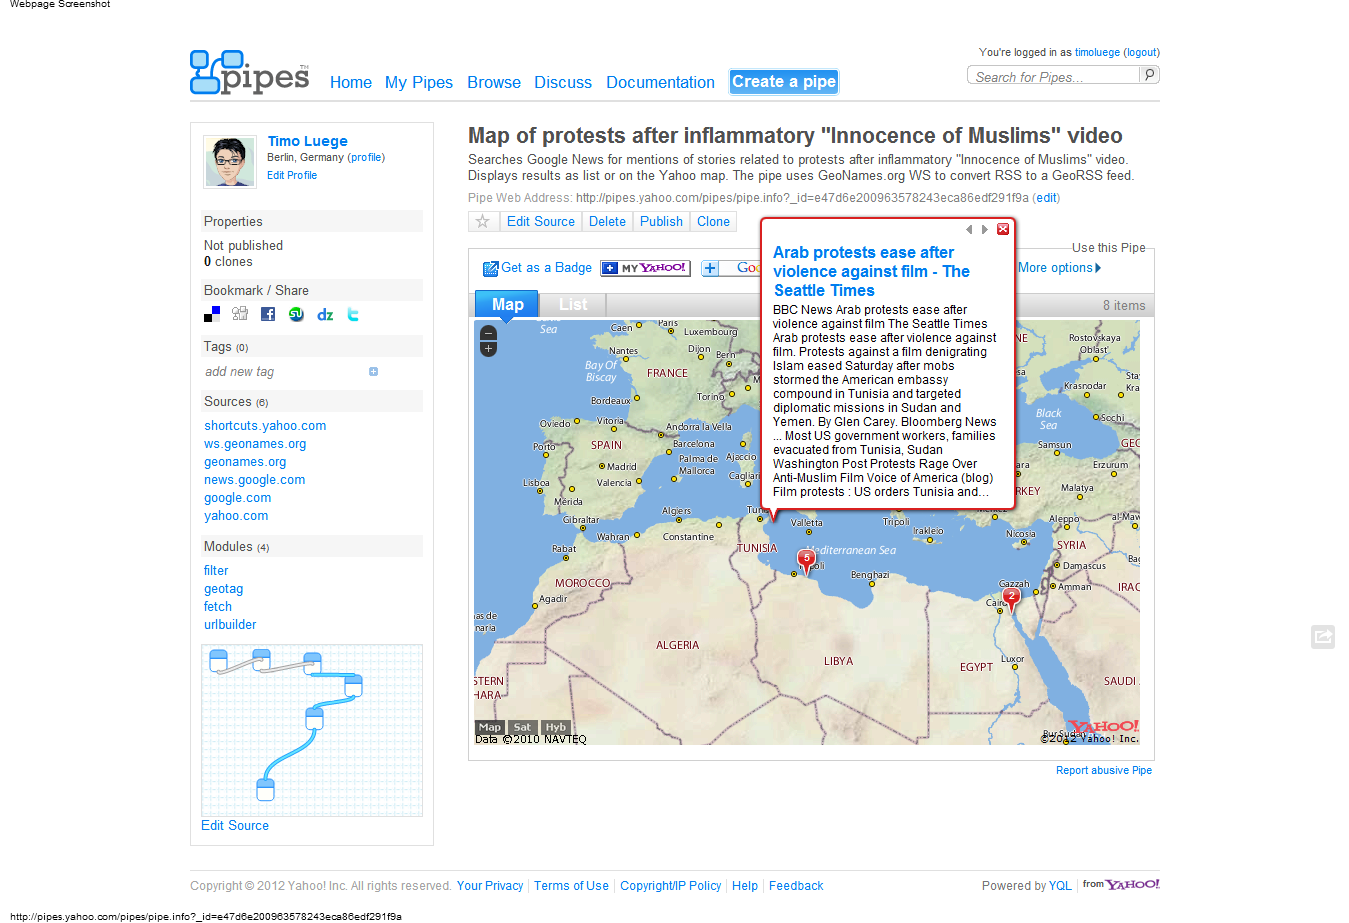 This Pipe maps news related to protests in the Arab world.